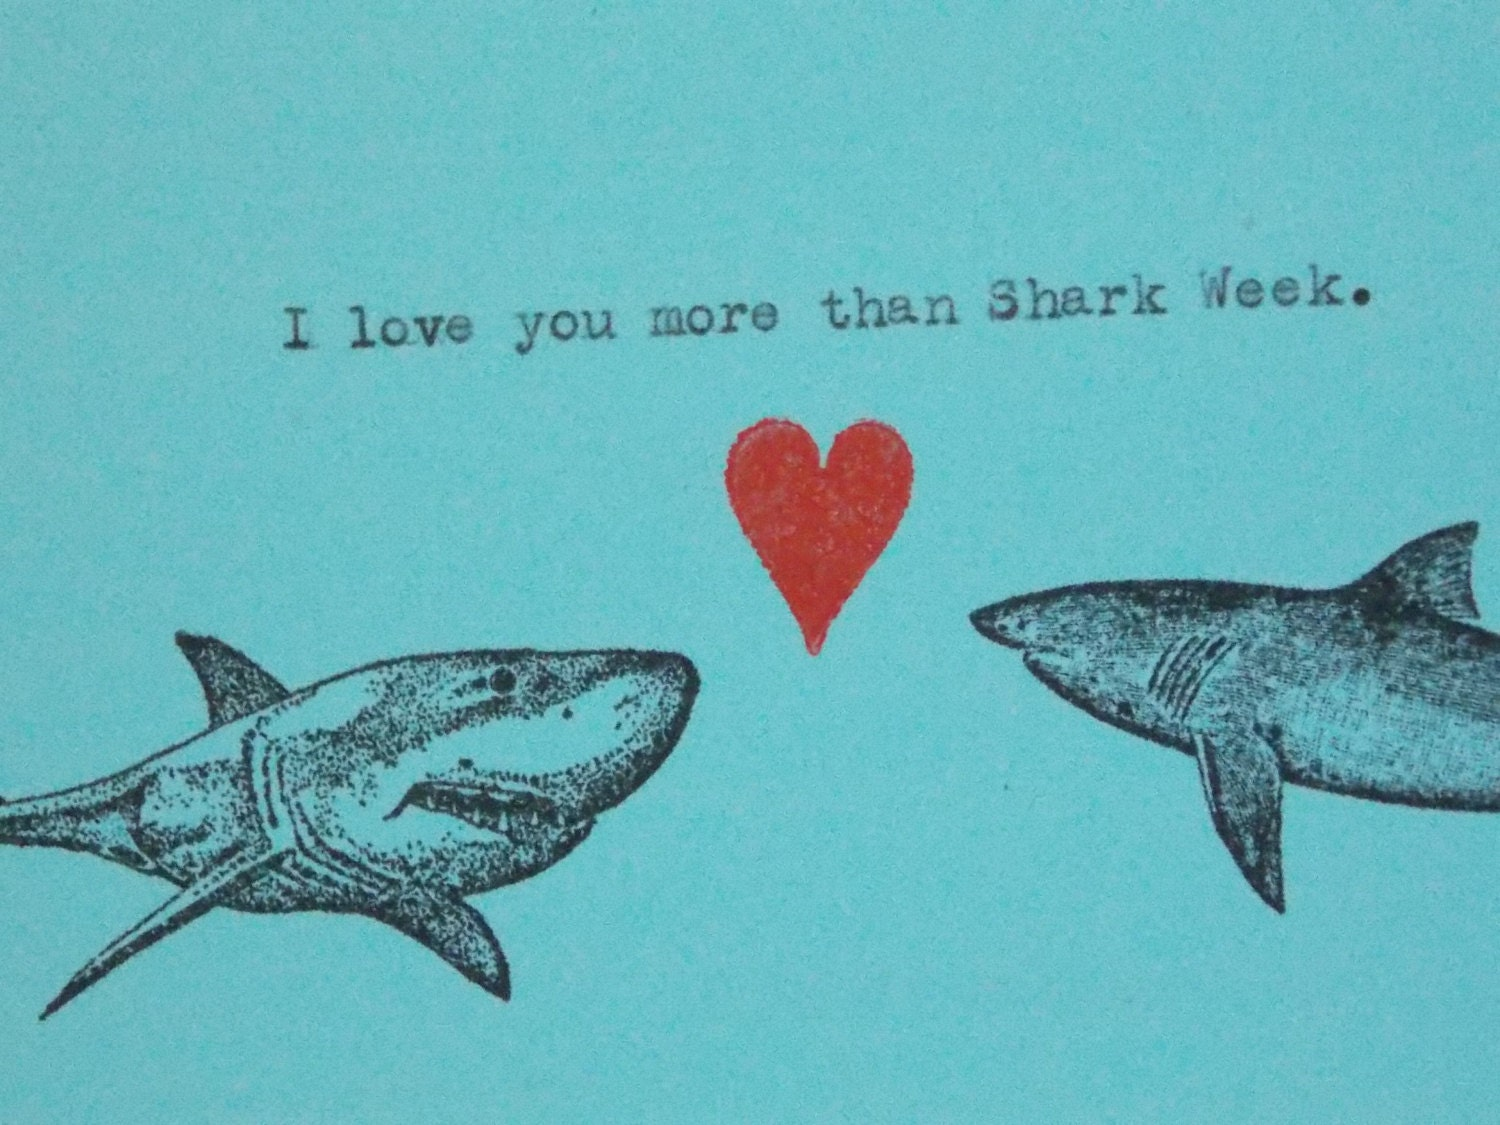 I Love You More Than Funny Quotes Shark Week Card Funny Love Card I Love You More Than Shark